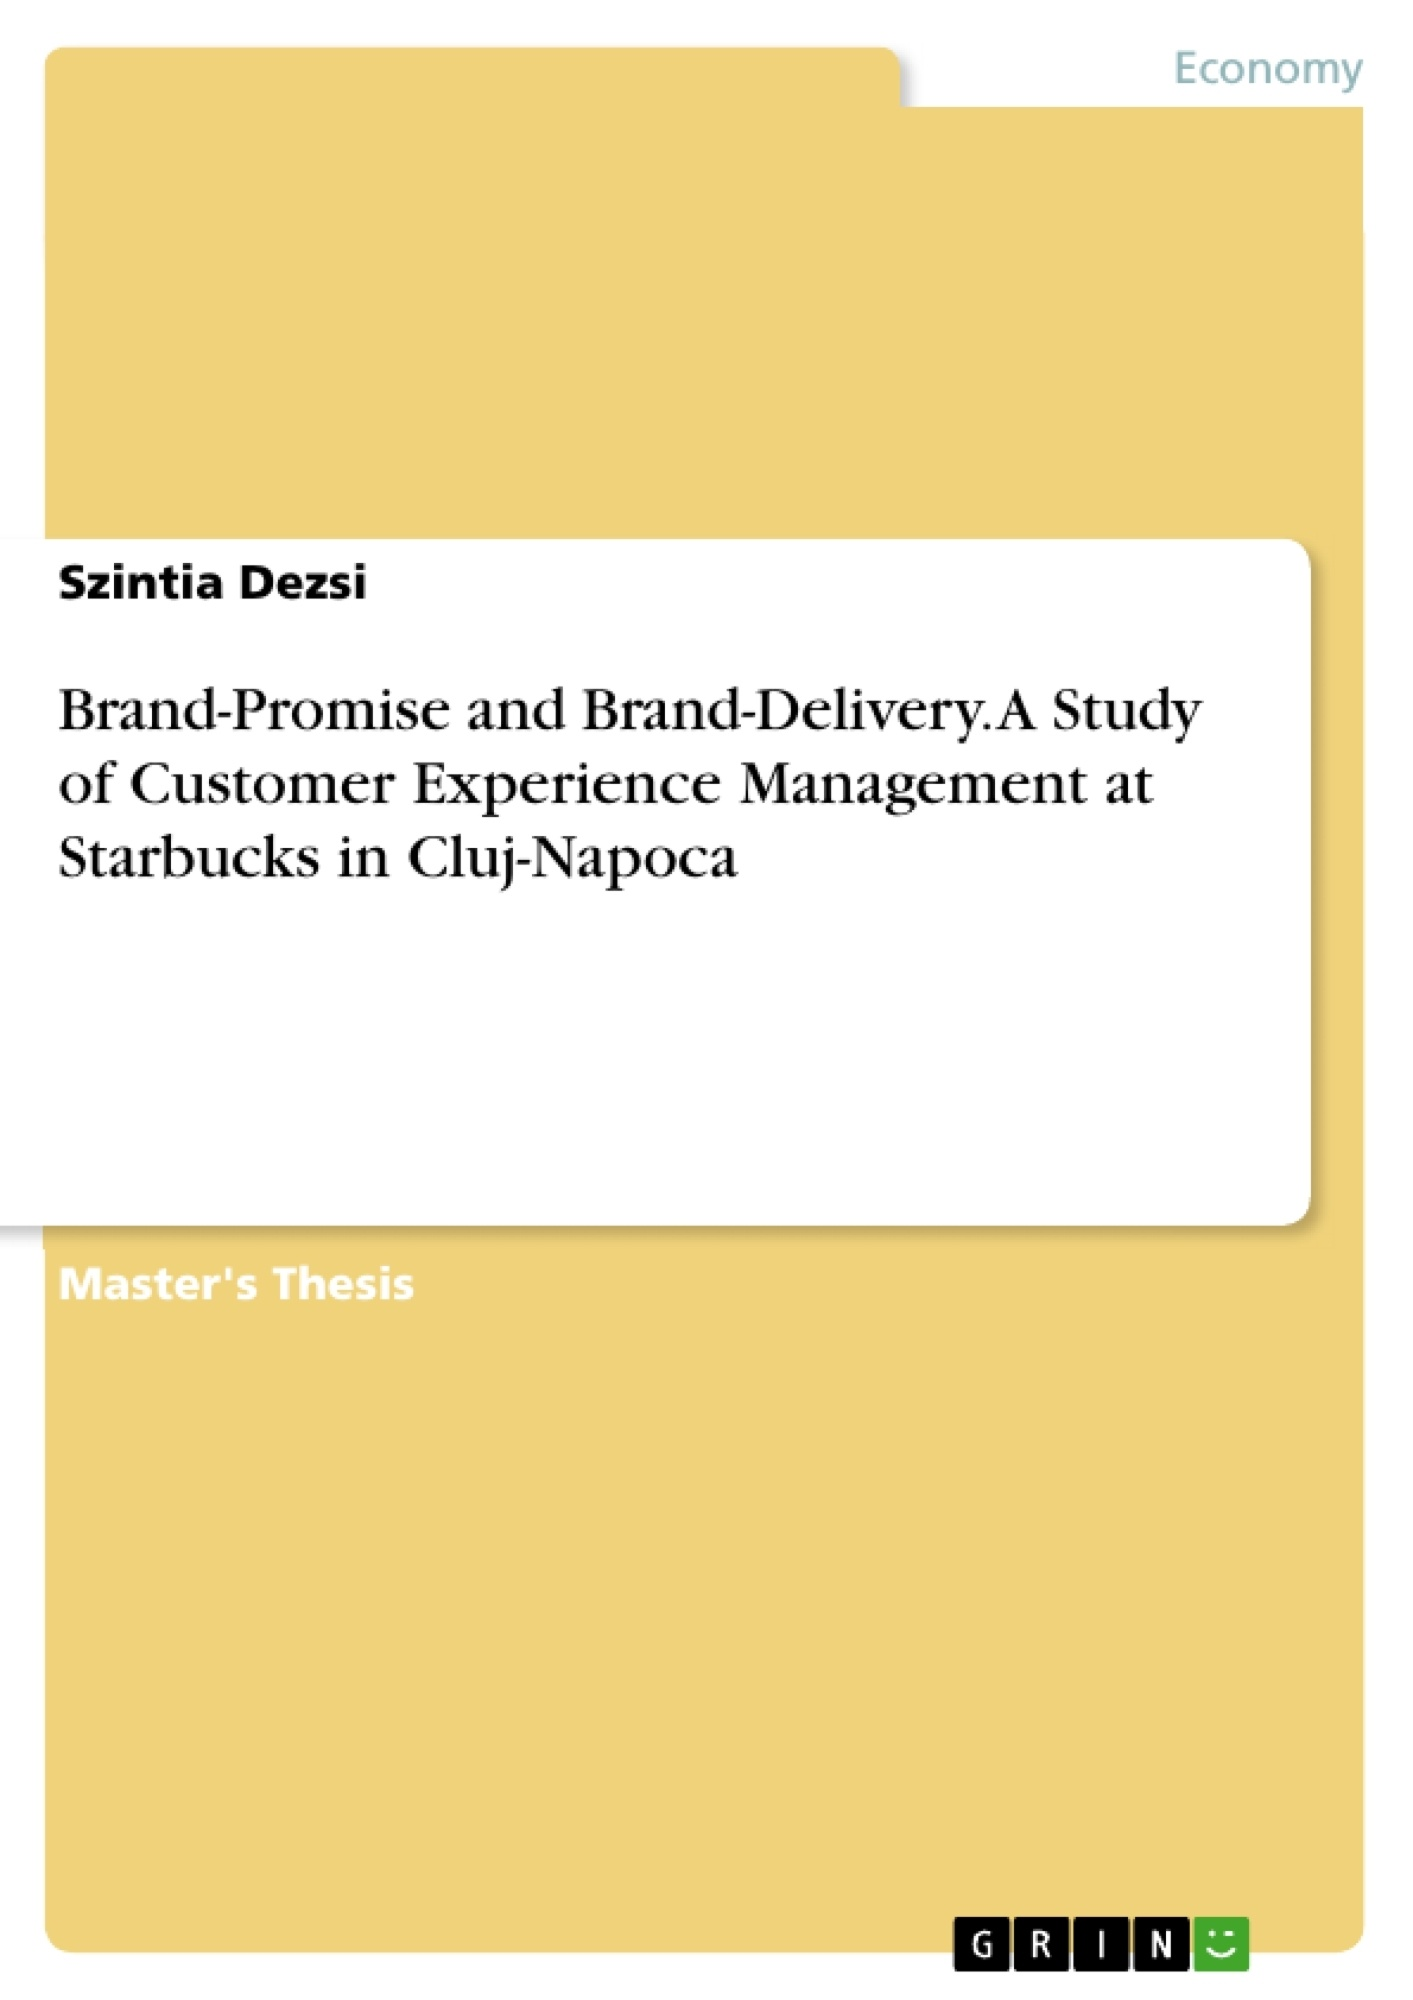 Title: Brand-Promise and Brand-Delivery. A Study of Customer Experience Management at Starbucks in Cluj-Napoca